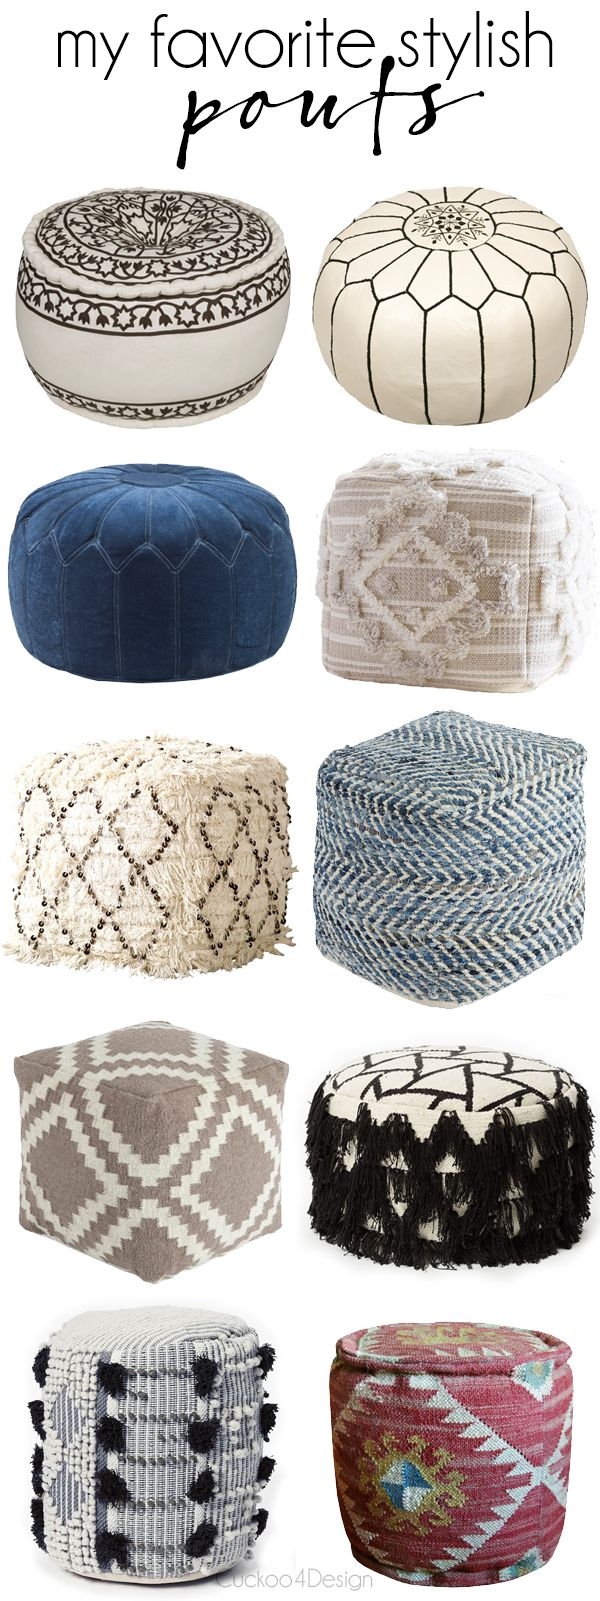 my favorite stylish poufs